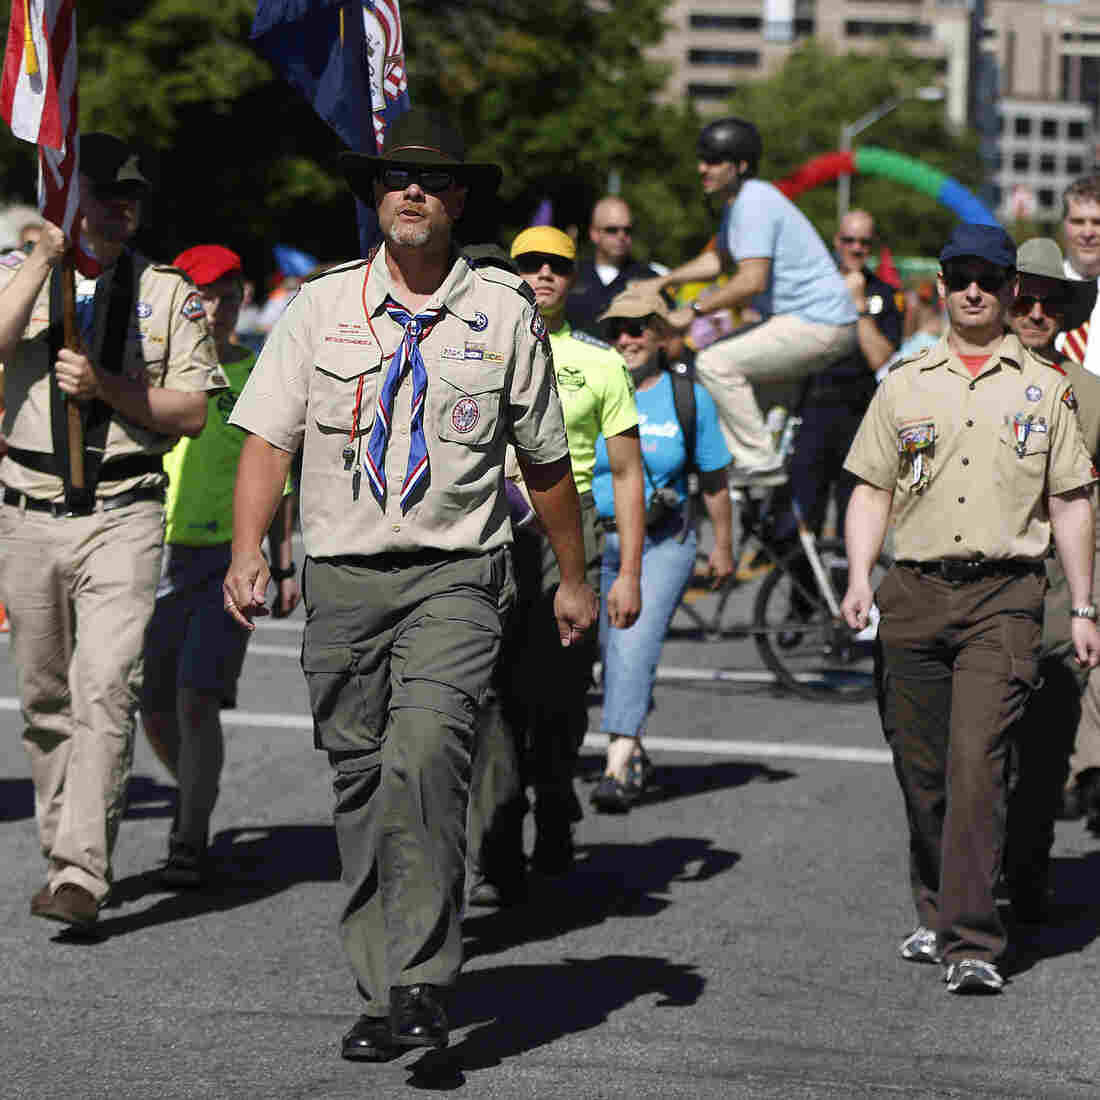 Boy Scouts March In Uniform At Utah Gay Pride Parade